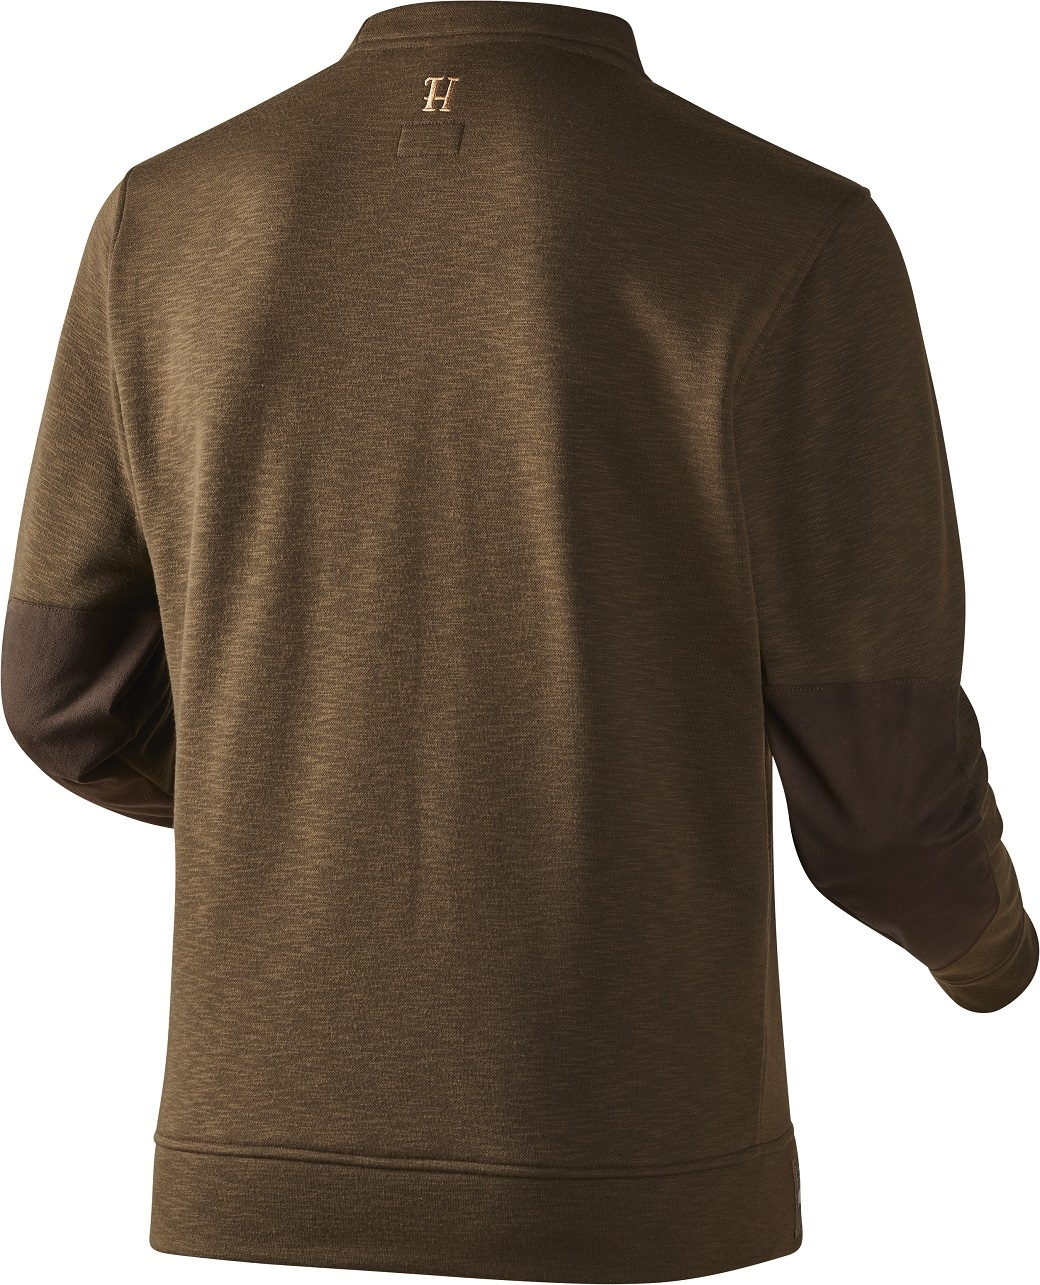 Härkila Sporting Sweatshirt Slate Brown-2